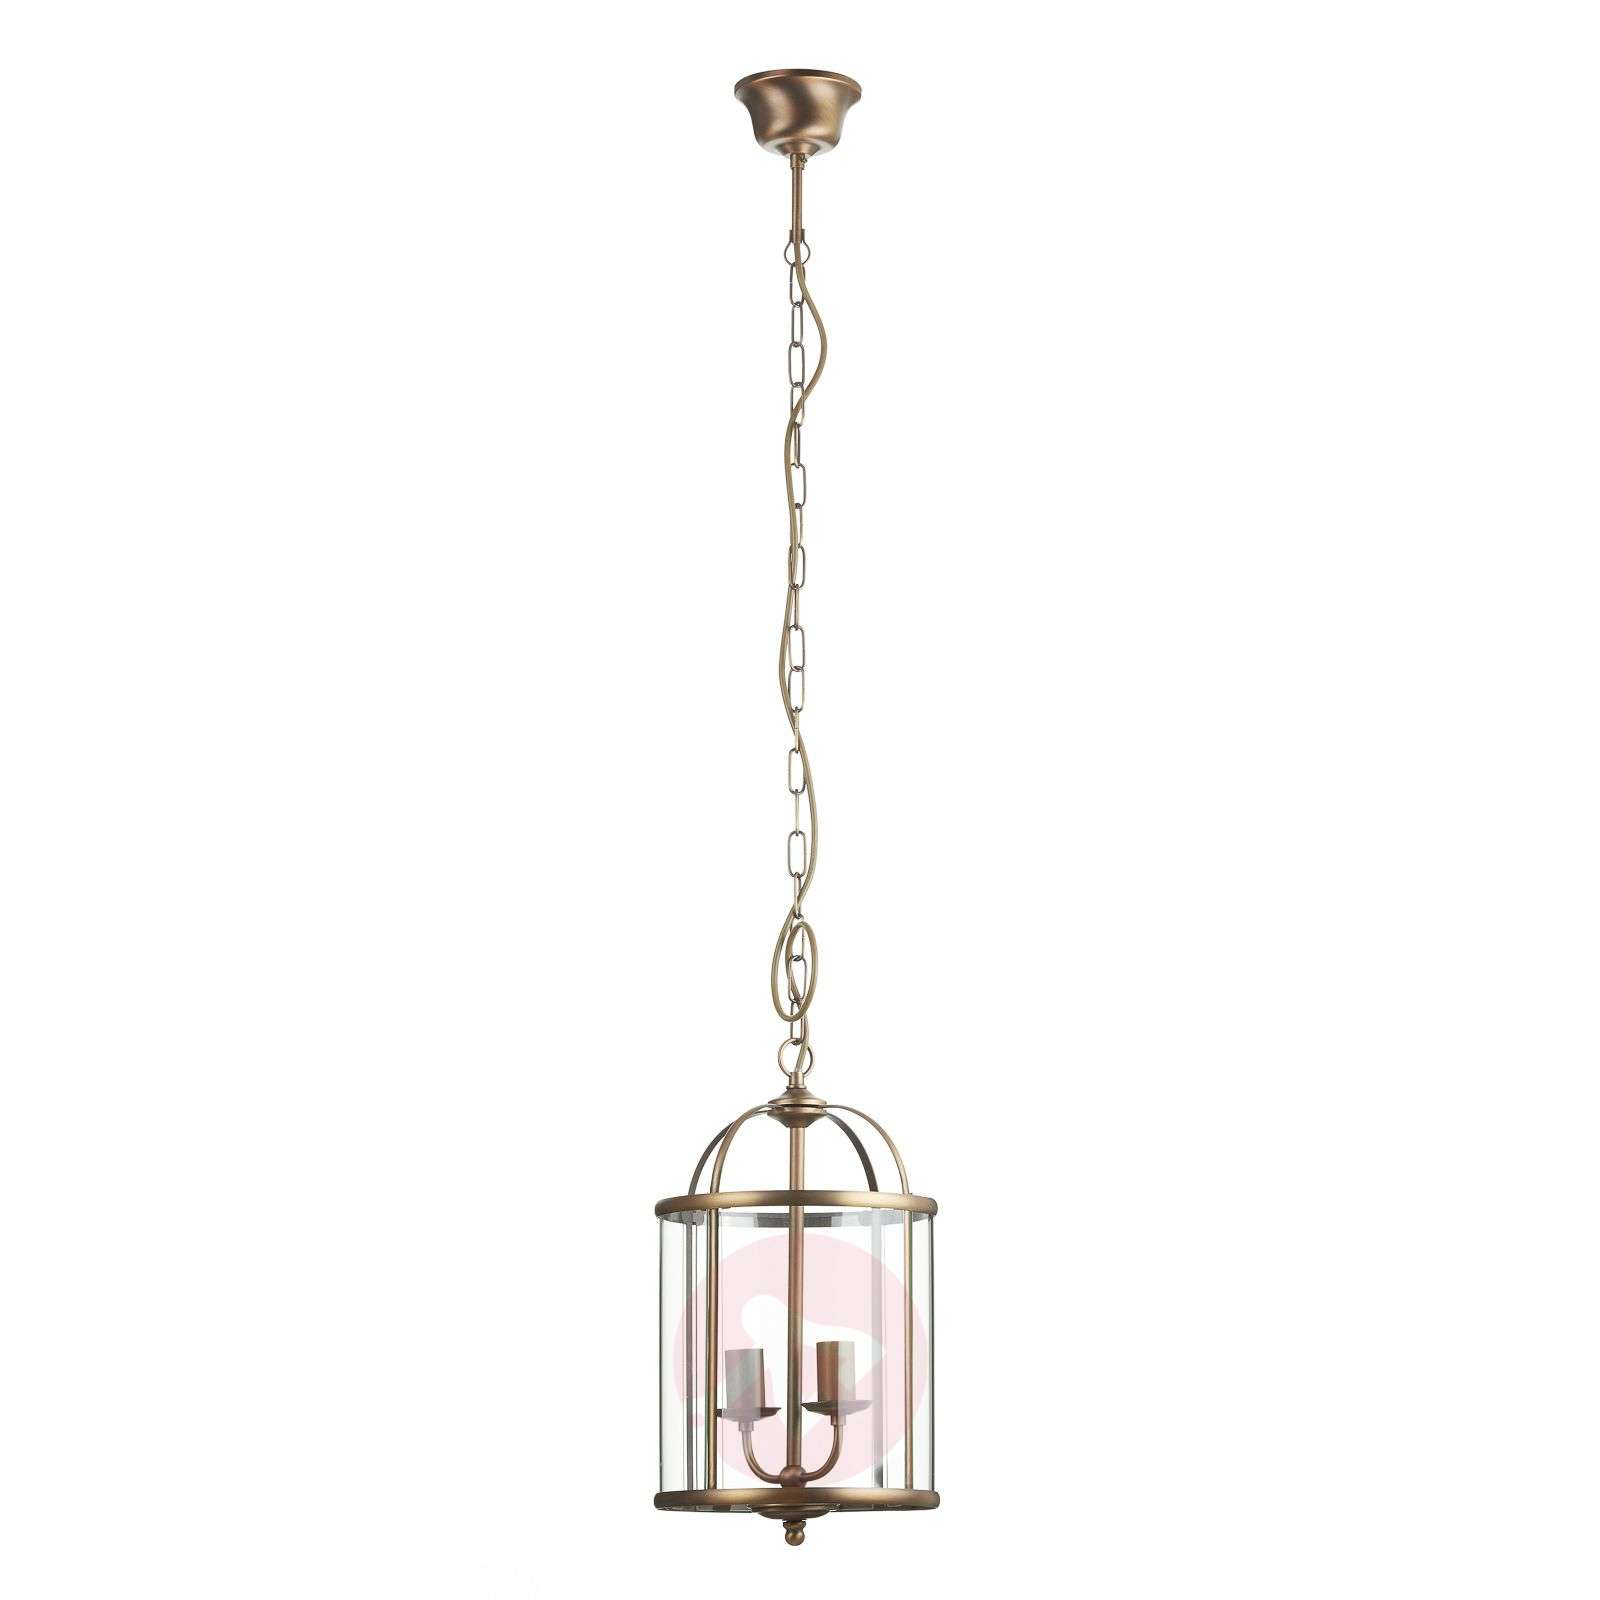 Suspension décorative Pimpernel 23 cm-8509461-03